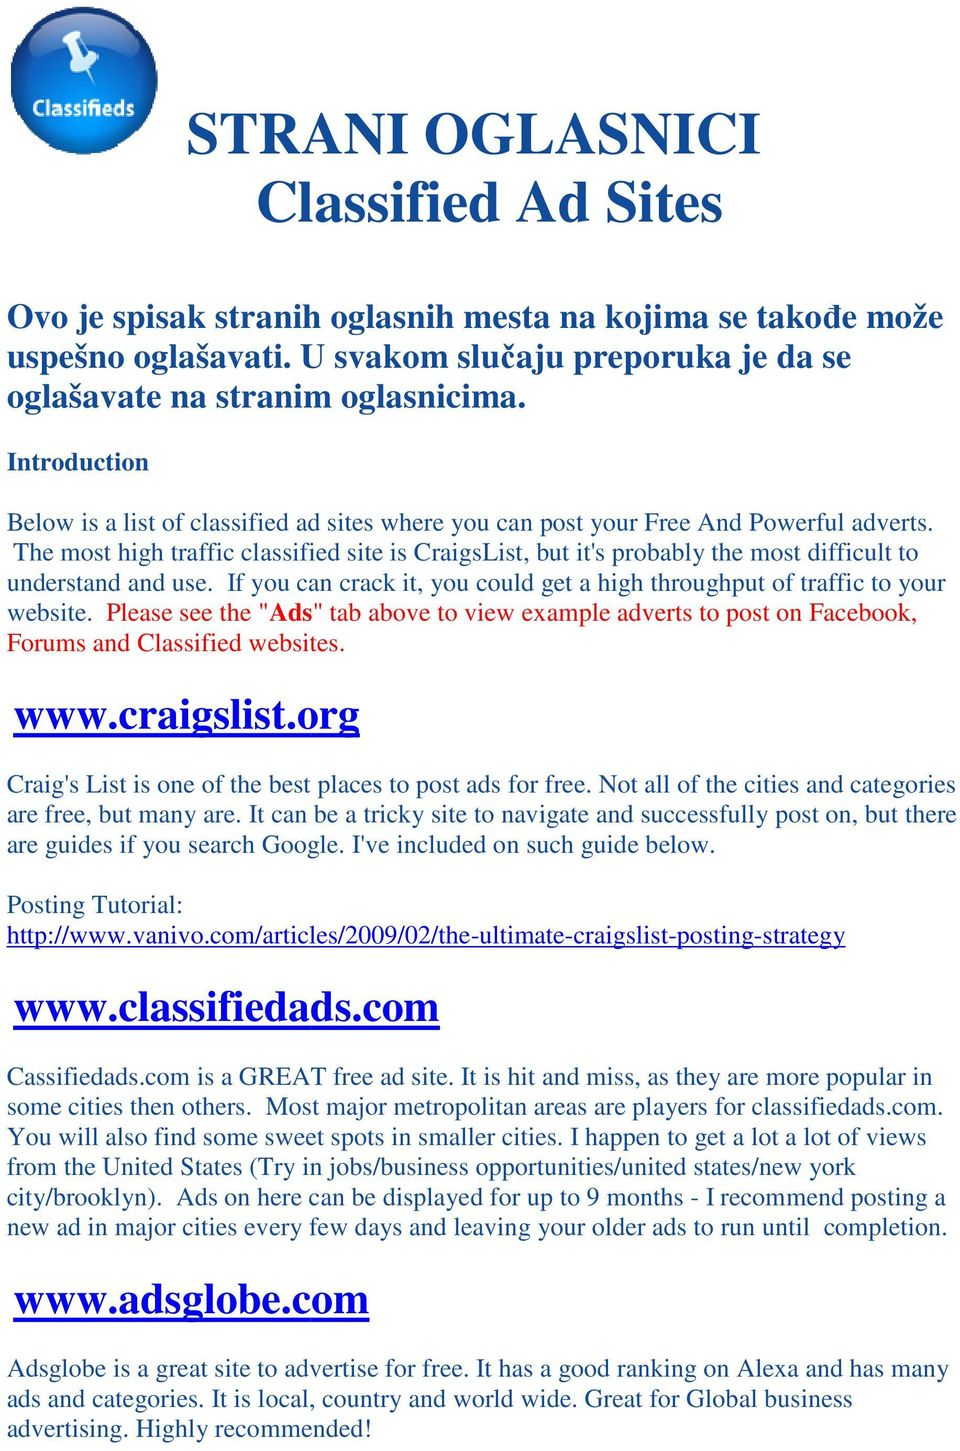 STRANI OGLASNICI Classified Ad Sites - PDF